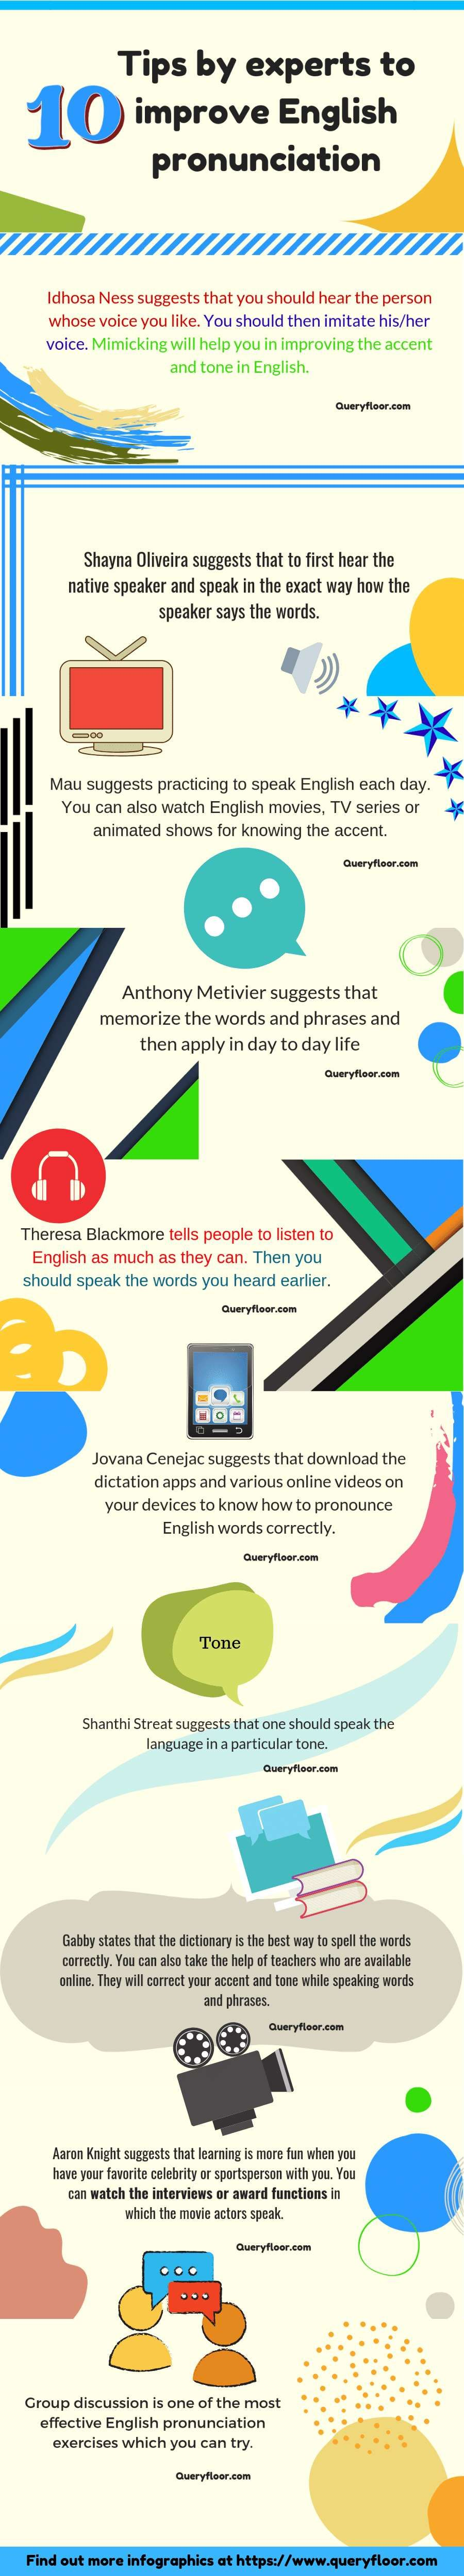 10 Tips By Experts To Improve English Pronunciation Improve English Pronunciation Infographic